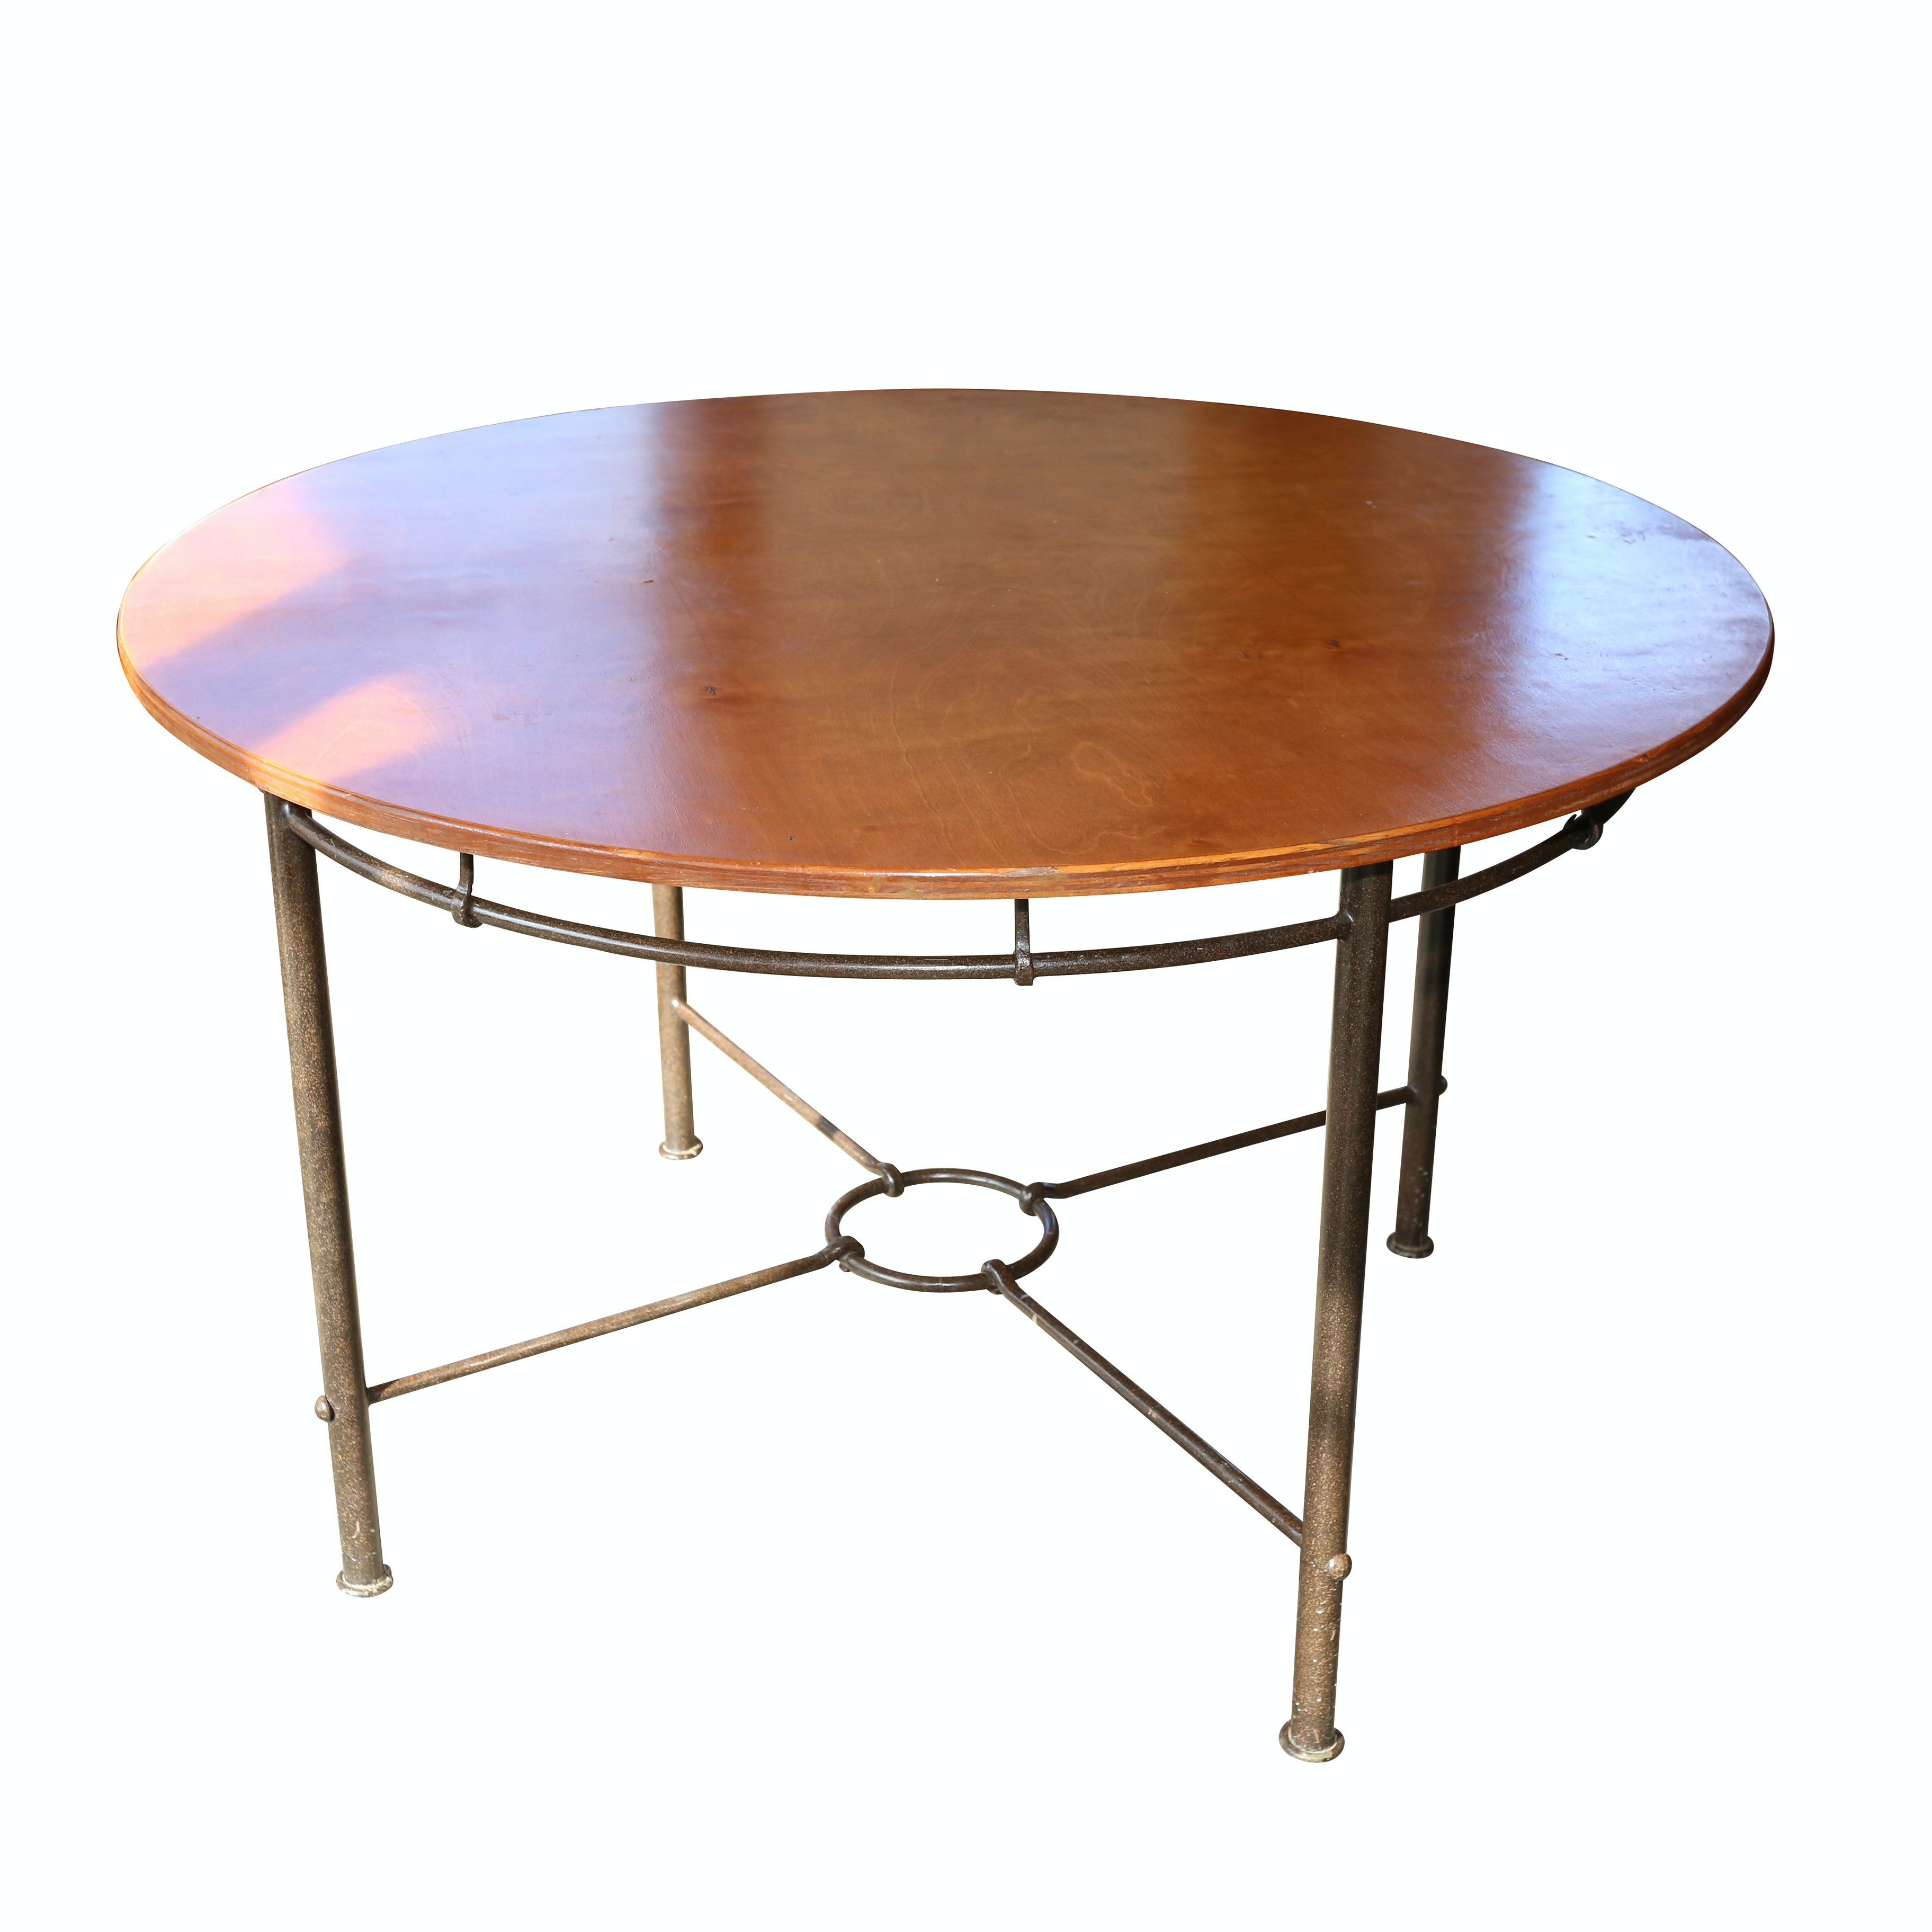 Walnut and Metal Circular Dining Table, Late 20th Century